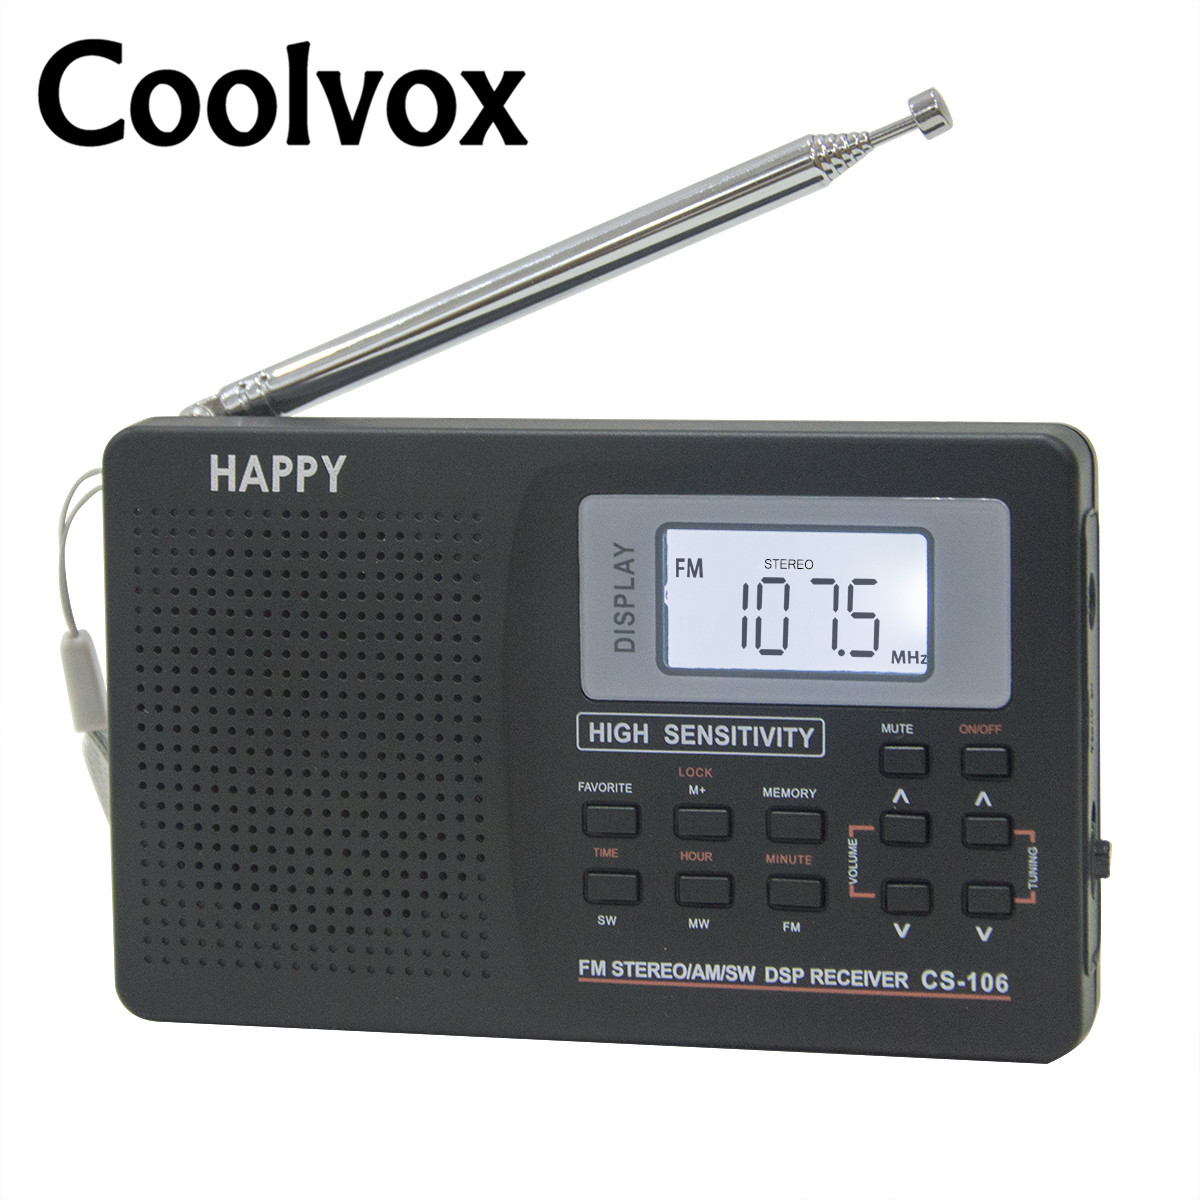 Coolvox CS-106 Full-band Multiband Stereo Digital Tuner FM / AM / SW / LW / TV Bunyi Band penuh Band Penerima Antena Radio dengan Earphone